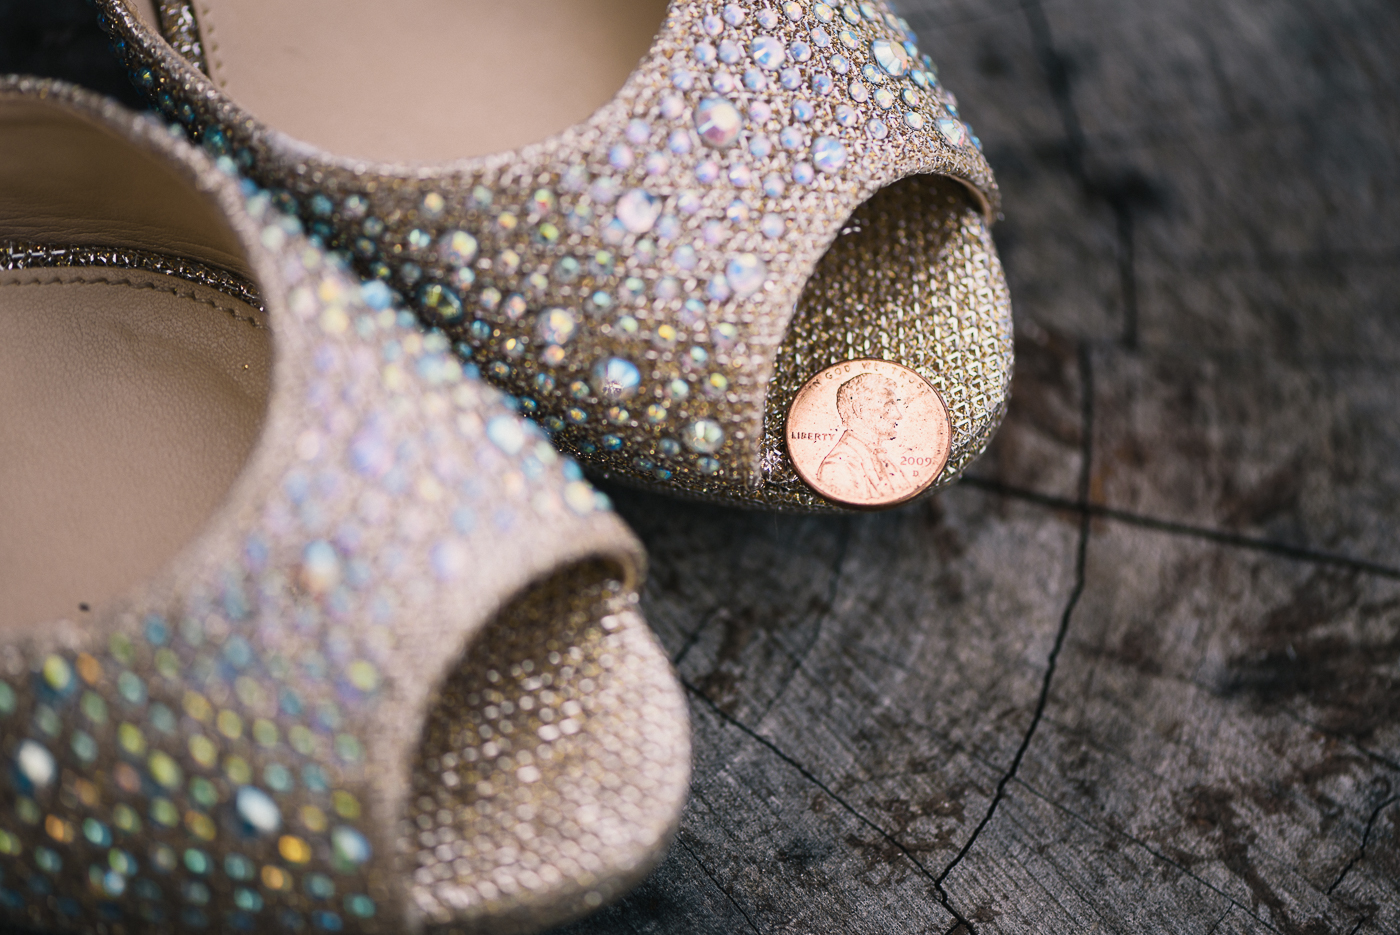 Wedding Shoes stump open toes off white tan studded wedding peep toe heels penny close up Abraham Lincoln